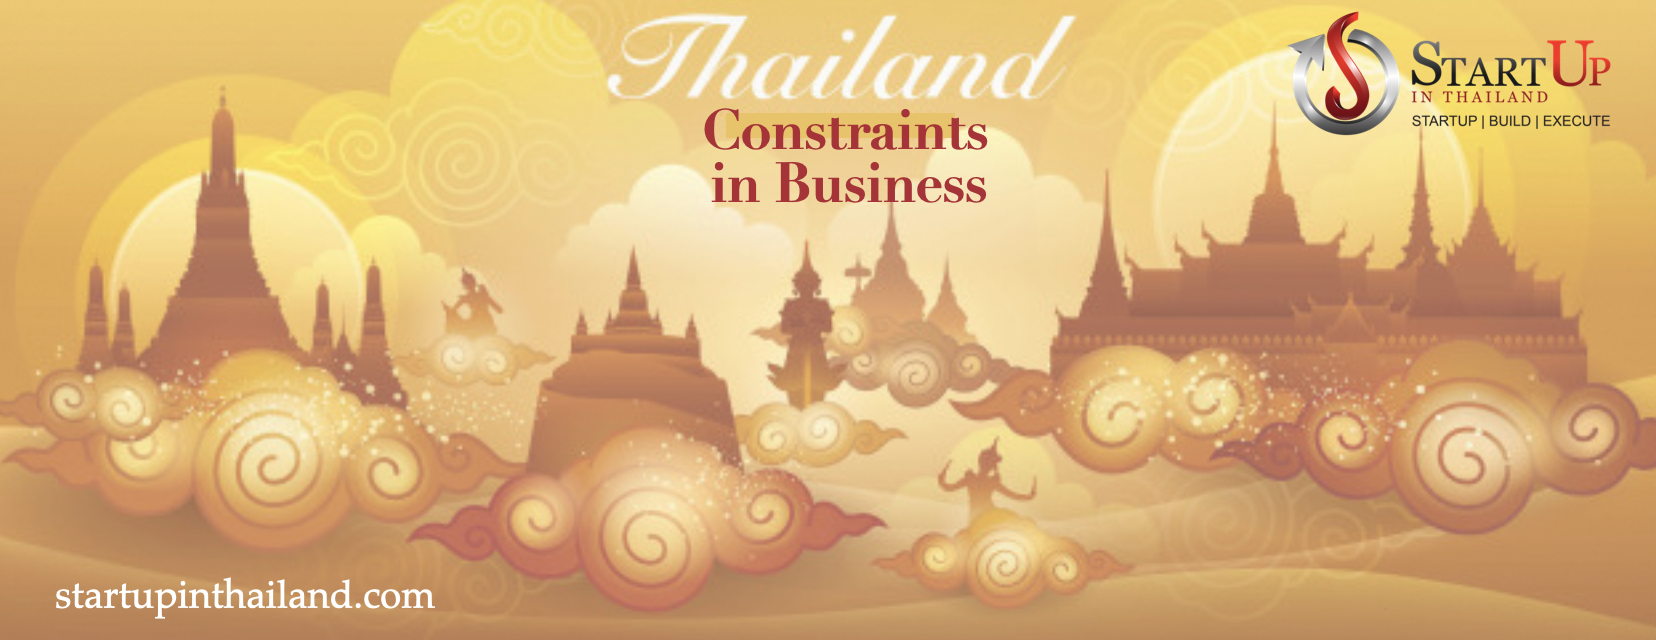 Thailand constraints in business graphic cover photo